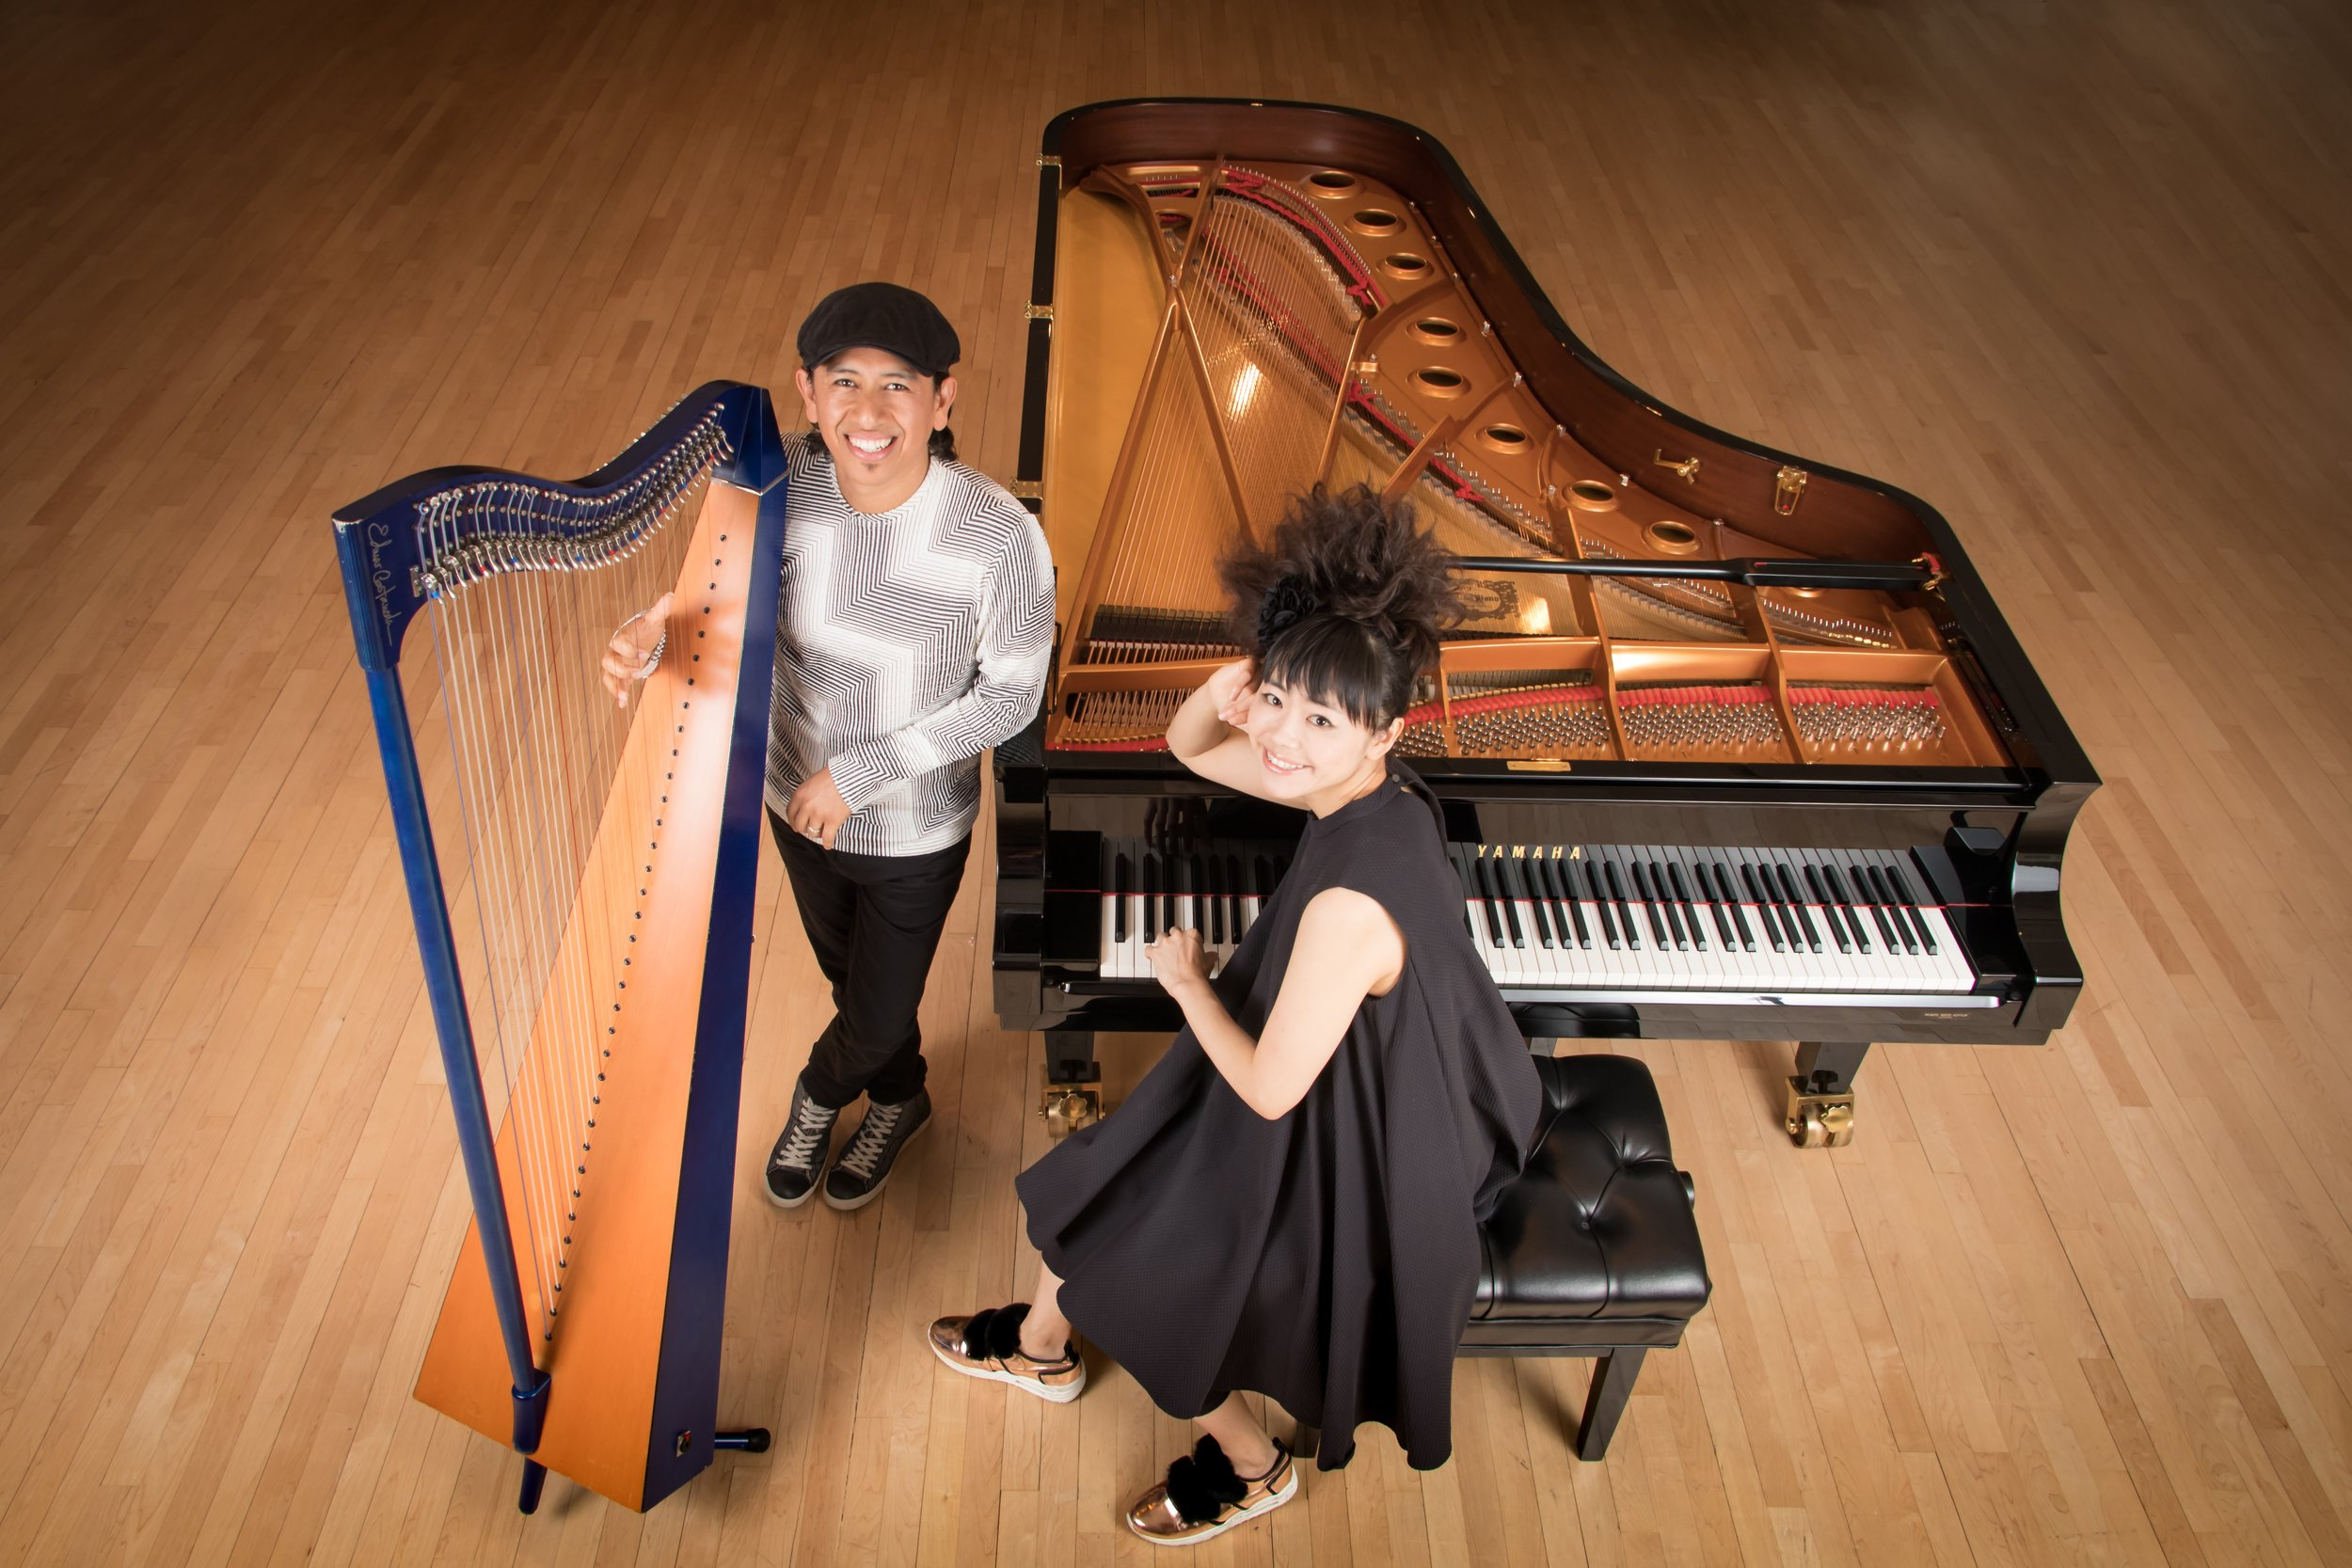 0041 Hiromi & Edmar Promo Publicity Portraits '17 ©2017 Juan Patino Photography Retouched Hi-Resolution Finals MON Jan 23 1st Deliv.jpg